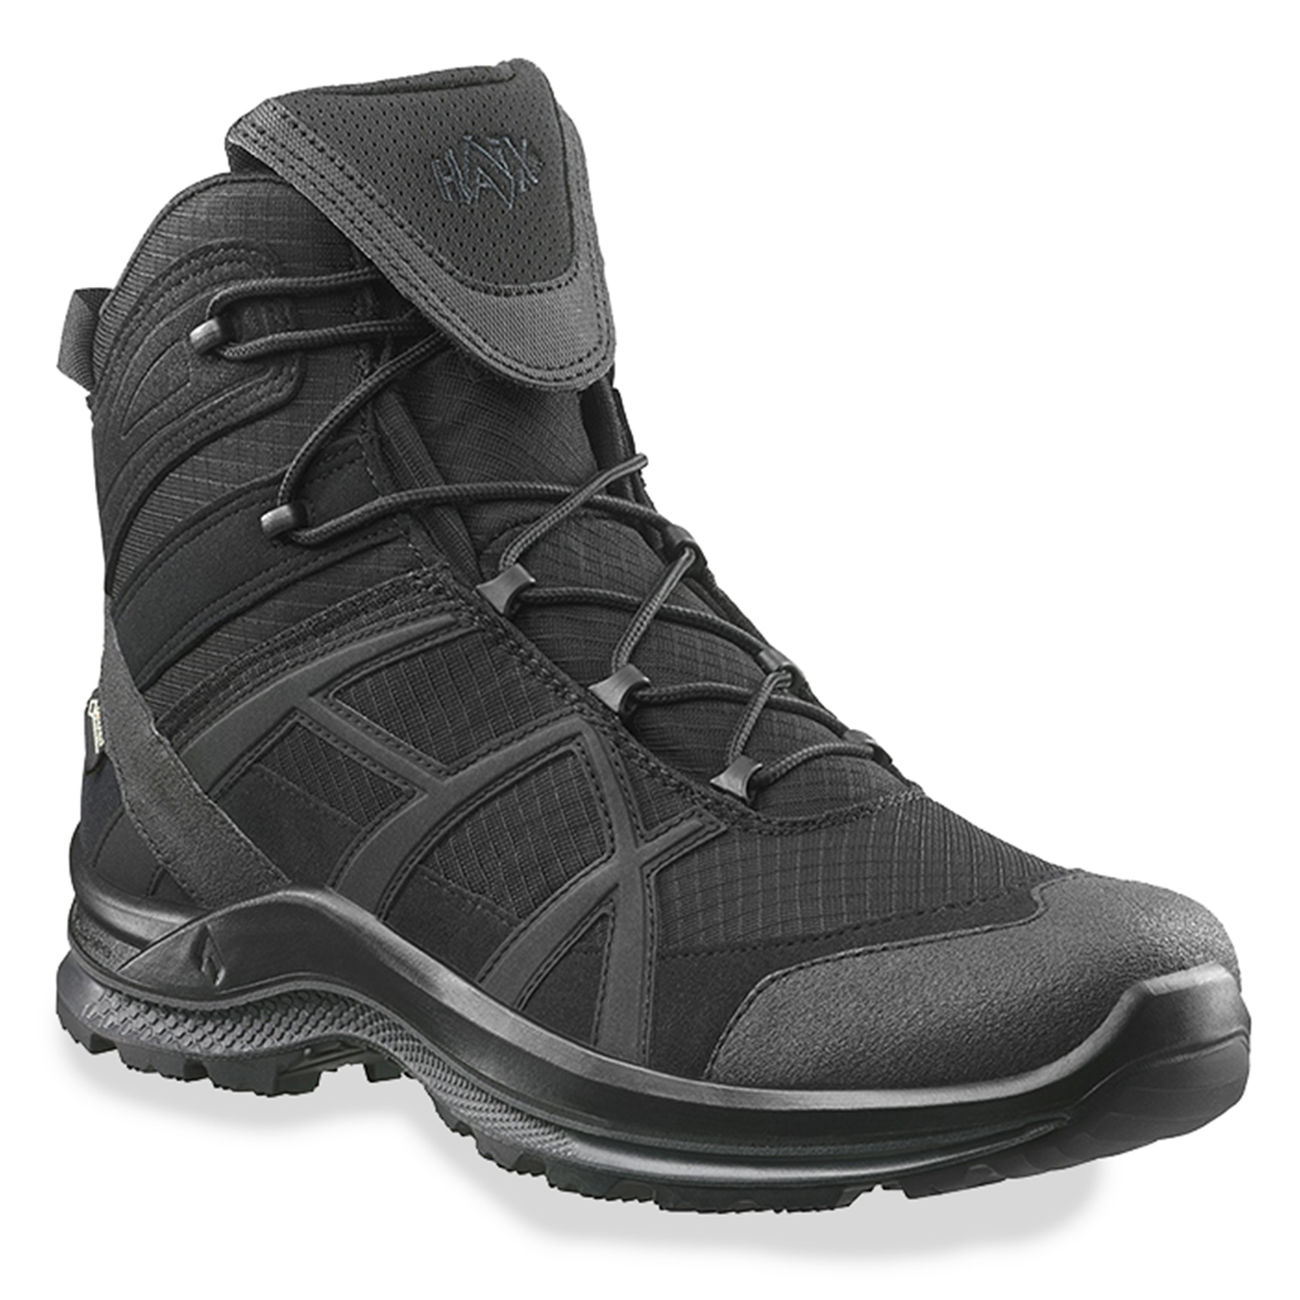 Haix Funktionsstiefel Black Eagle Athletic 2.1 GTX mid schwarz 0